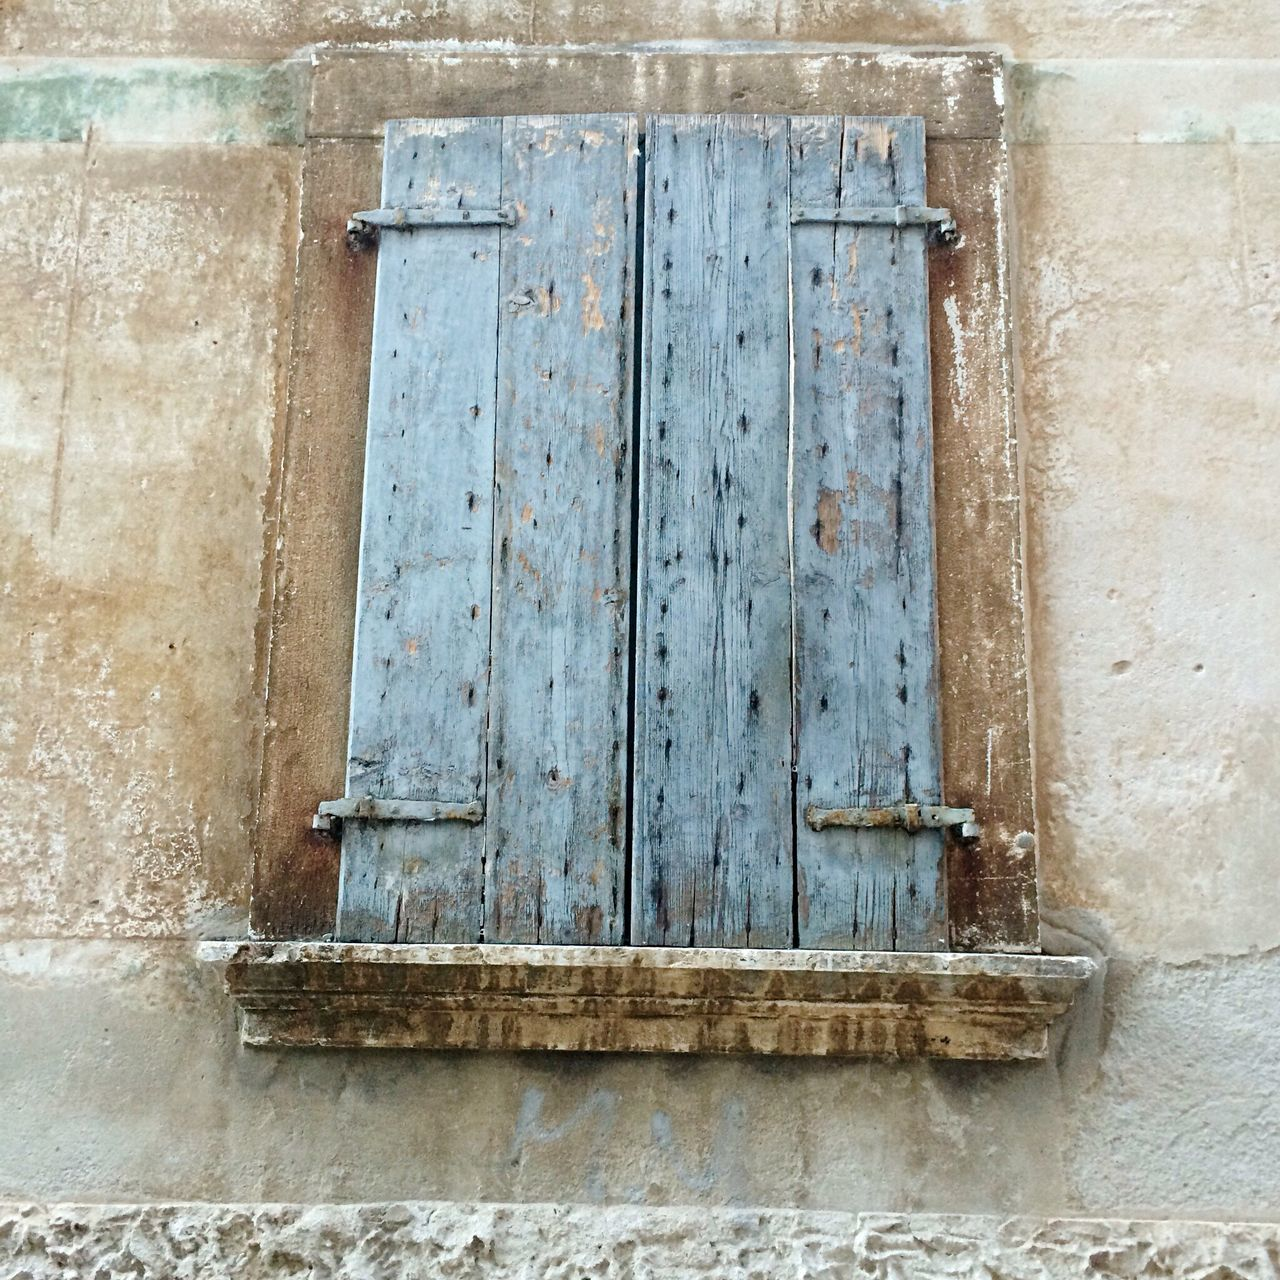 door, closed, old, no people, architecture, weathered, protection, hinge, built structure, wood - material, day, outdoors, building exterior, close-up, latch